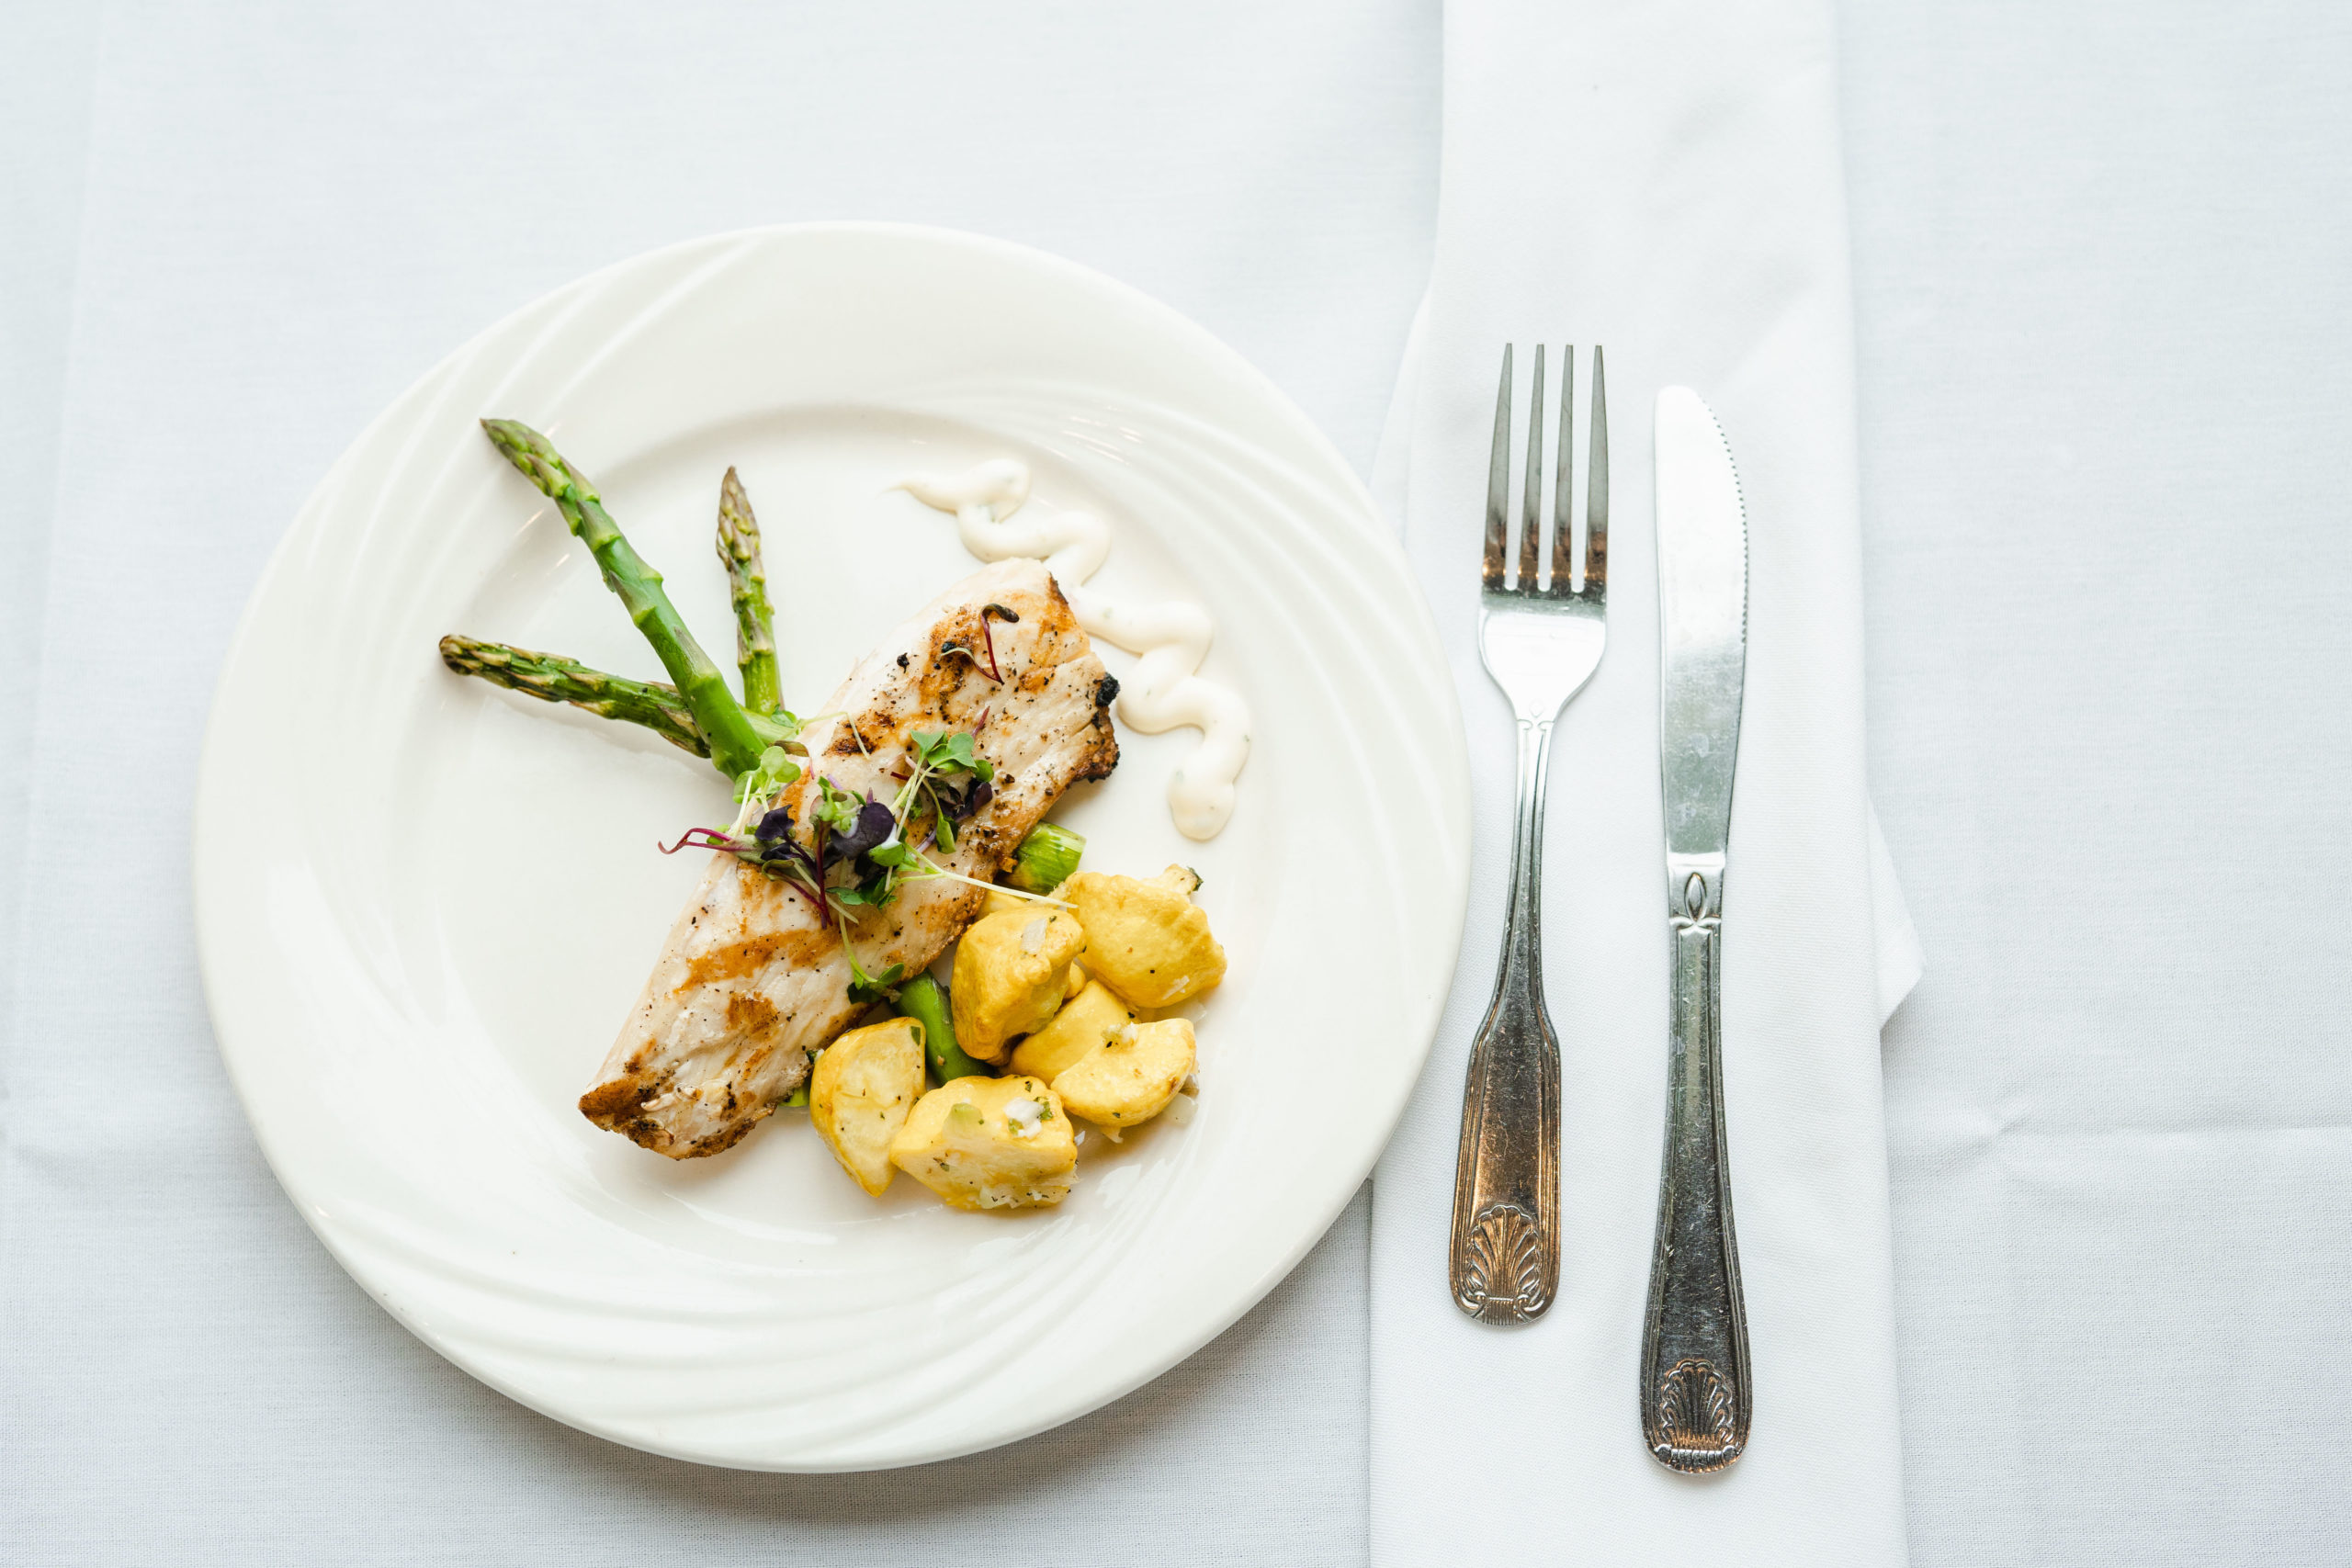 View fo elegantly plated meal with fish, potatoes and asparagus